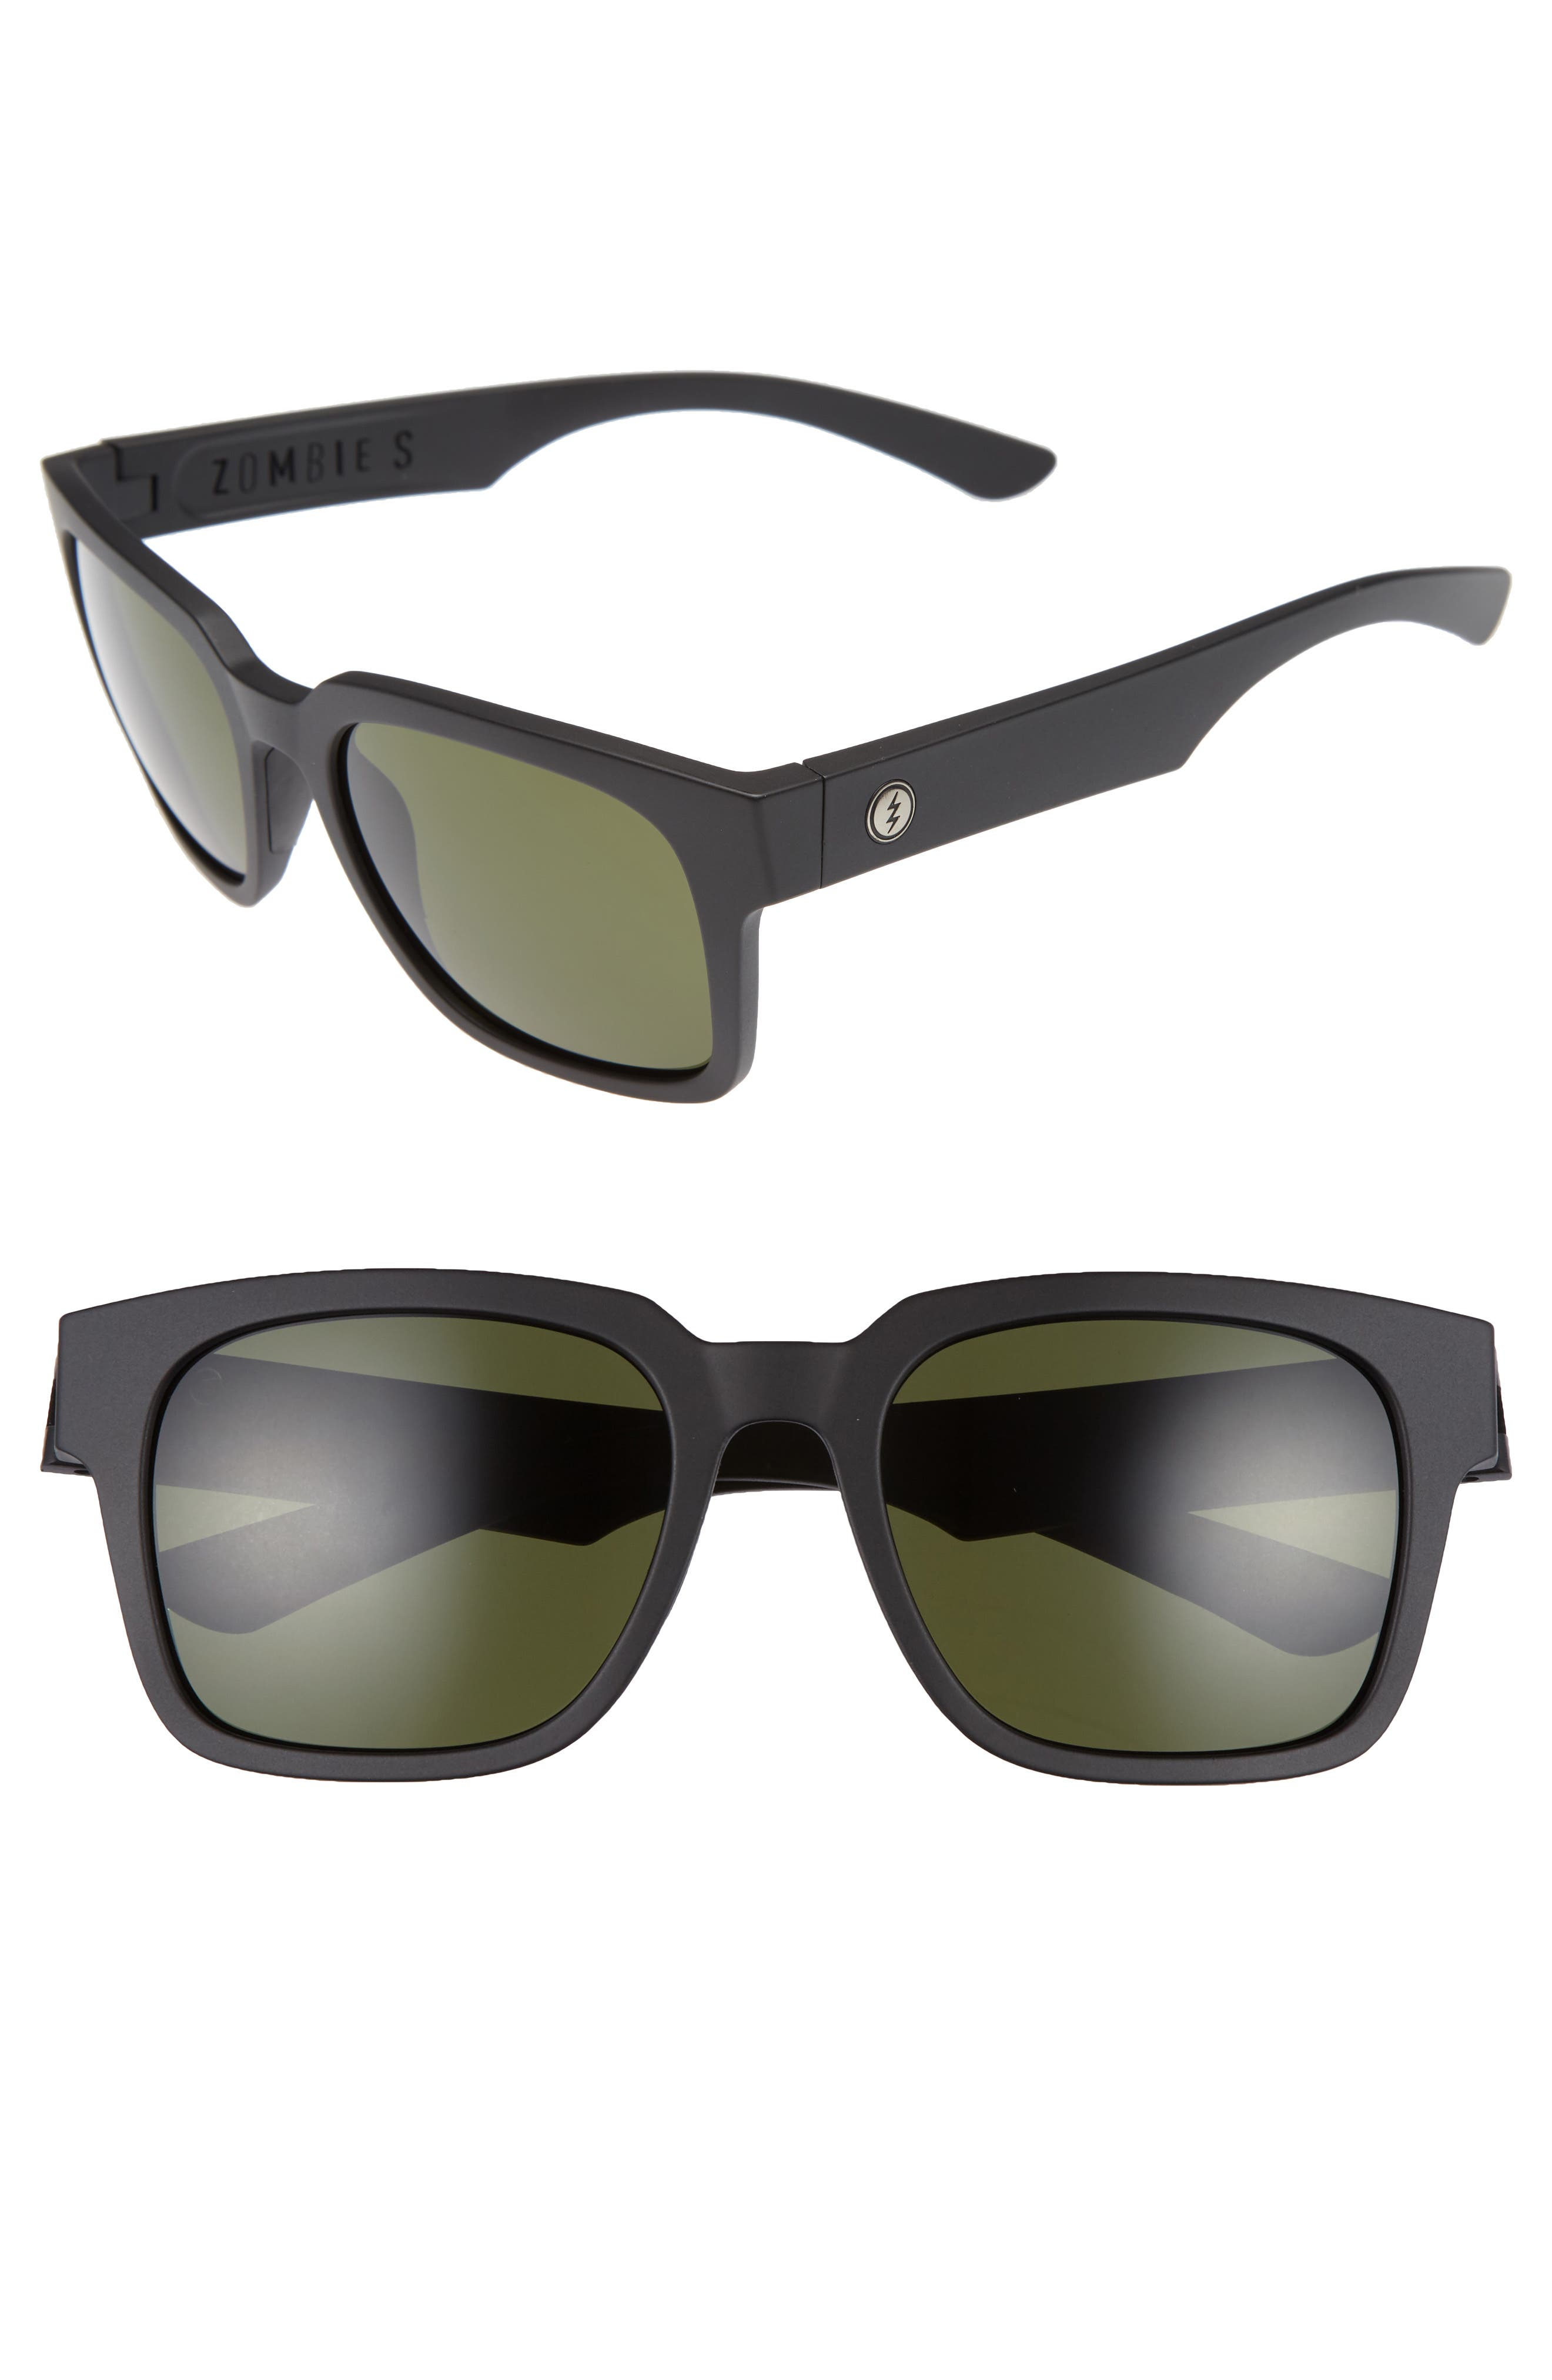 Alternate Image 1 Selected - ELECTRIC Zombie S 52mm Sunglasses